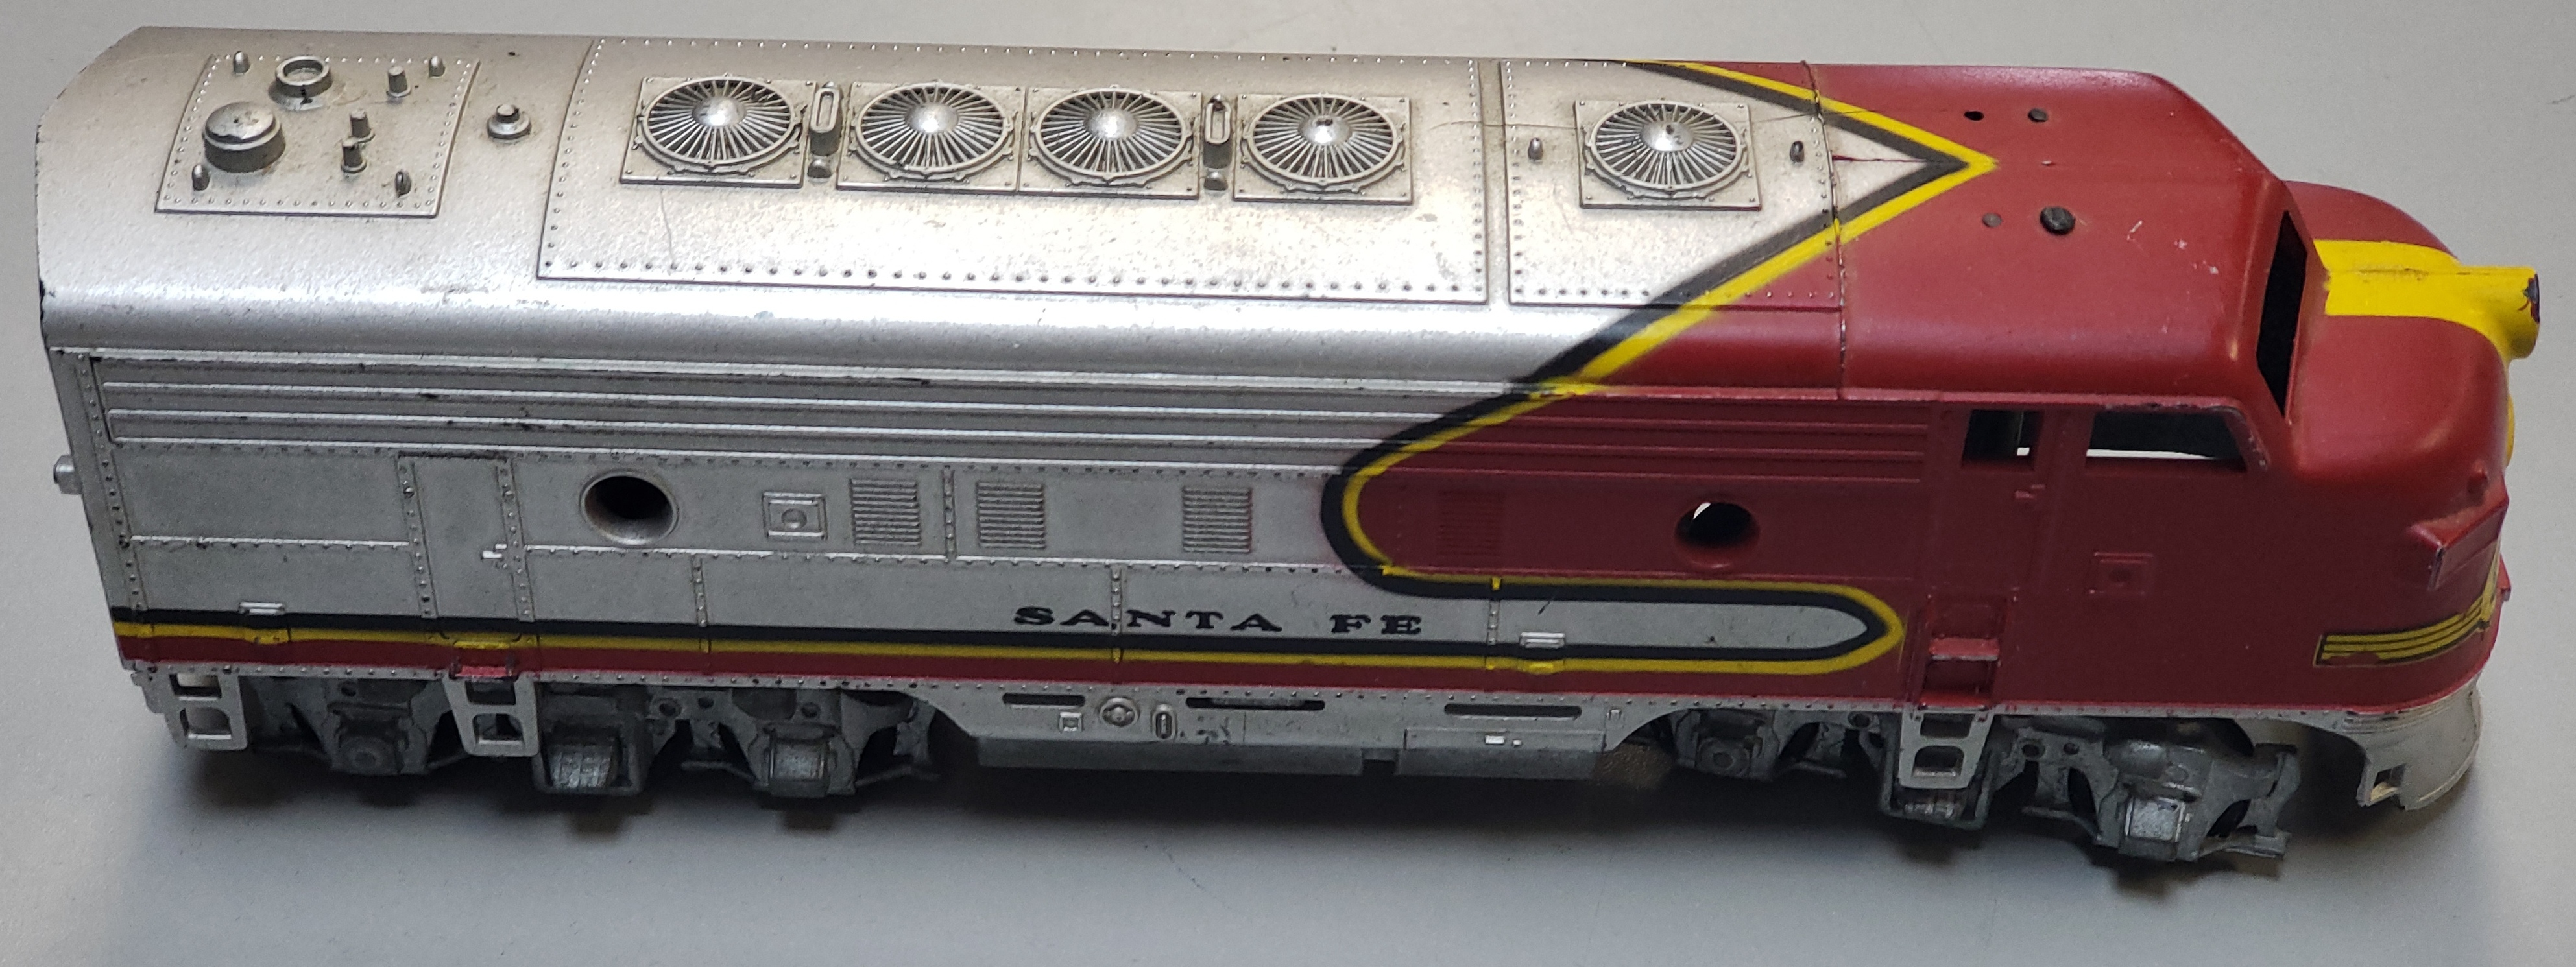 ATHEARN - SANTA FE - TRAIN COLLECTIBLES